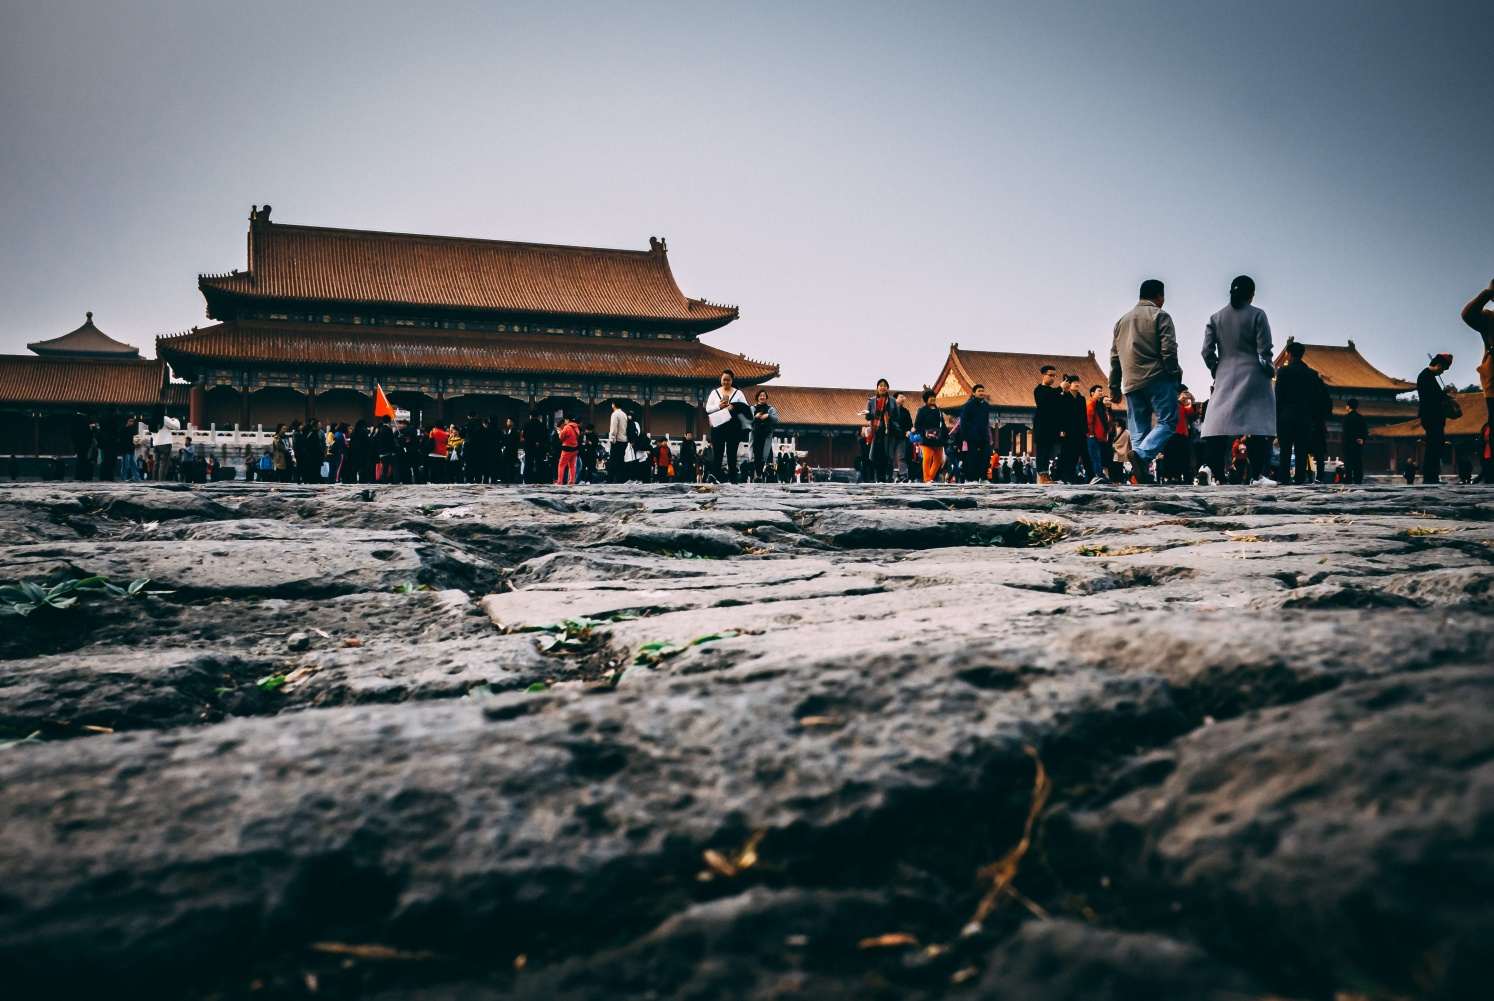 Day 14: Forbidden City & Tiananmen Square - Feel centuries of history all around you at this impressive and splendid Beijing must-see. Take in every corner of these vast grounds, the site of many historic and important events.